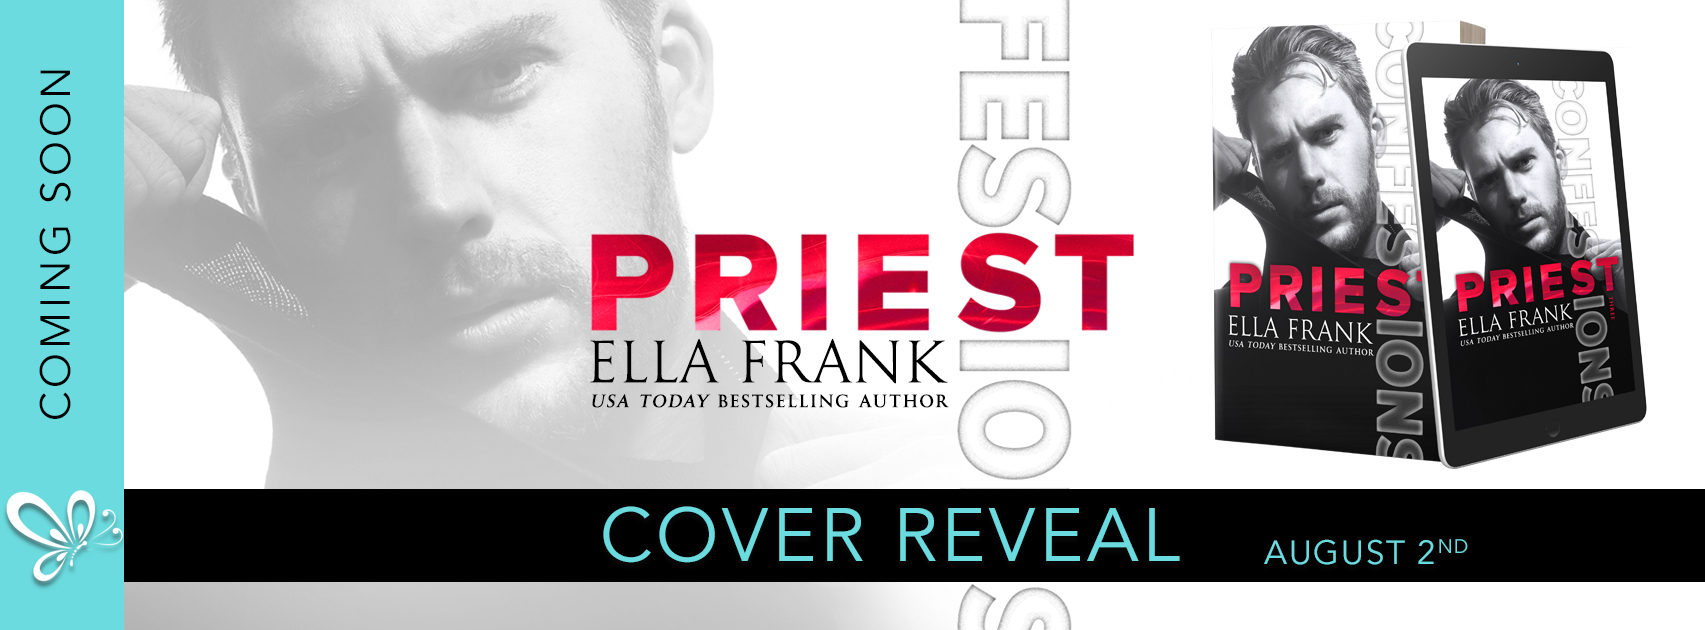 Priest-SBPRCoverReveal.jpg